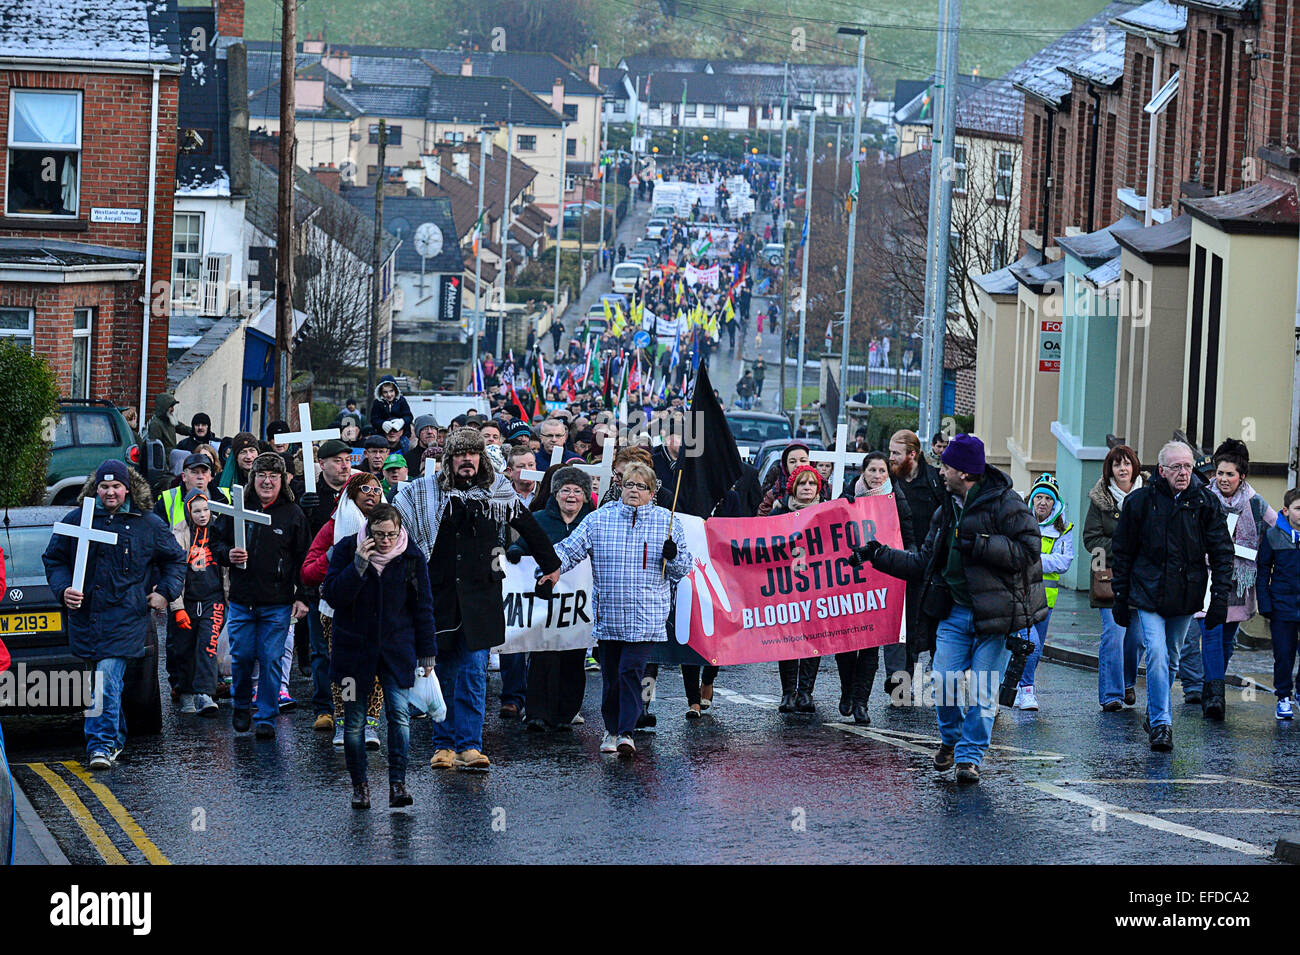 Londonderry, Northern Ireland, UK. 1st February, 2015. Thousands participate in the Bloody Sunday memorial in Londonderry Stock Photo